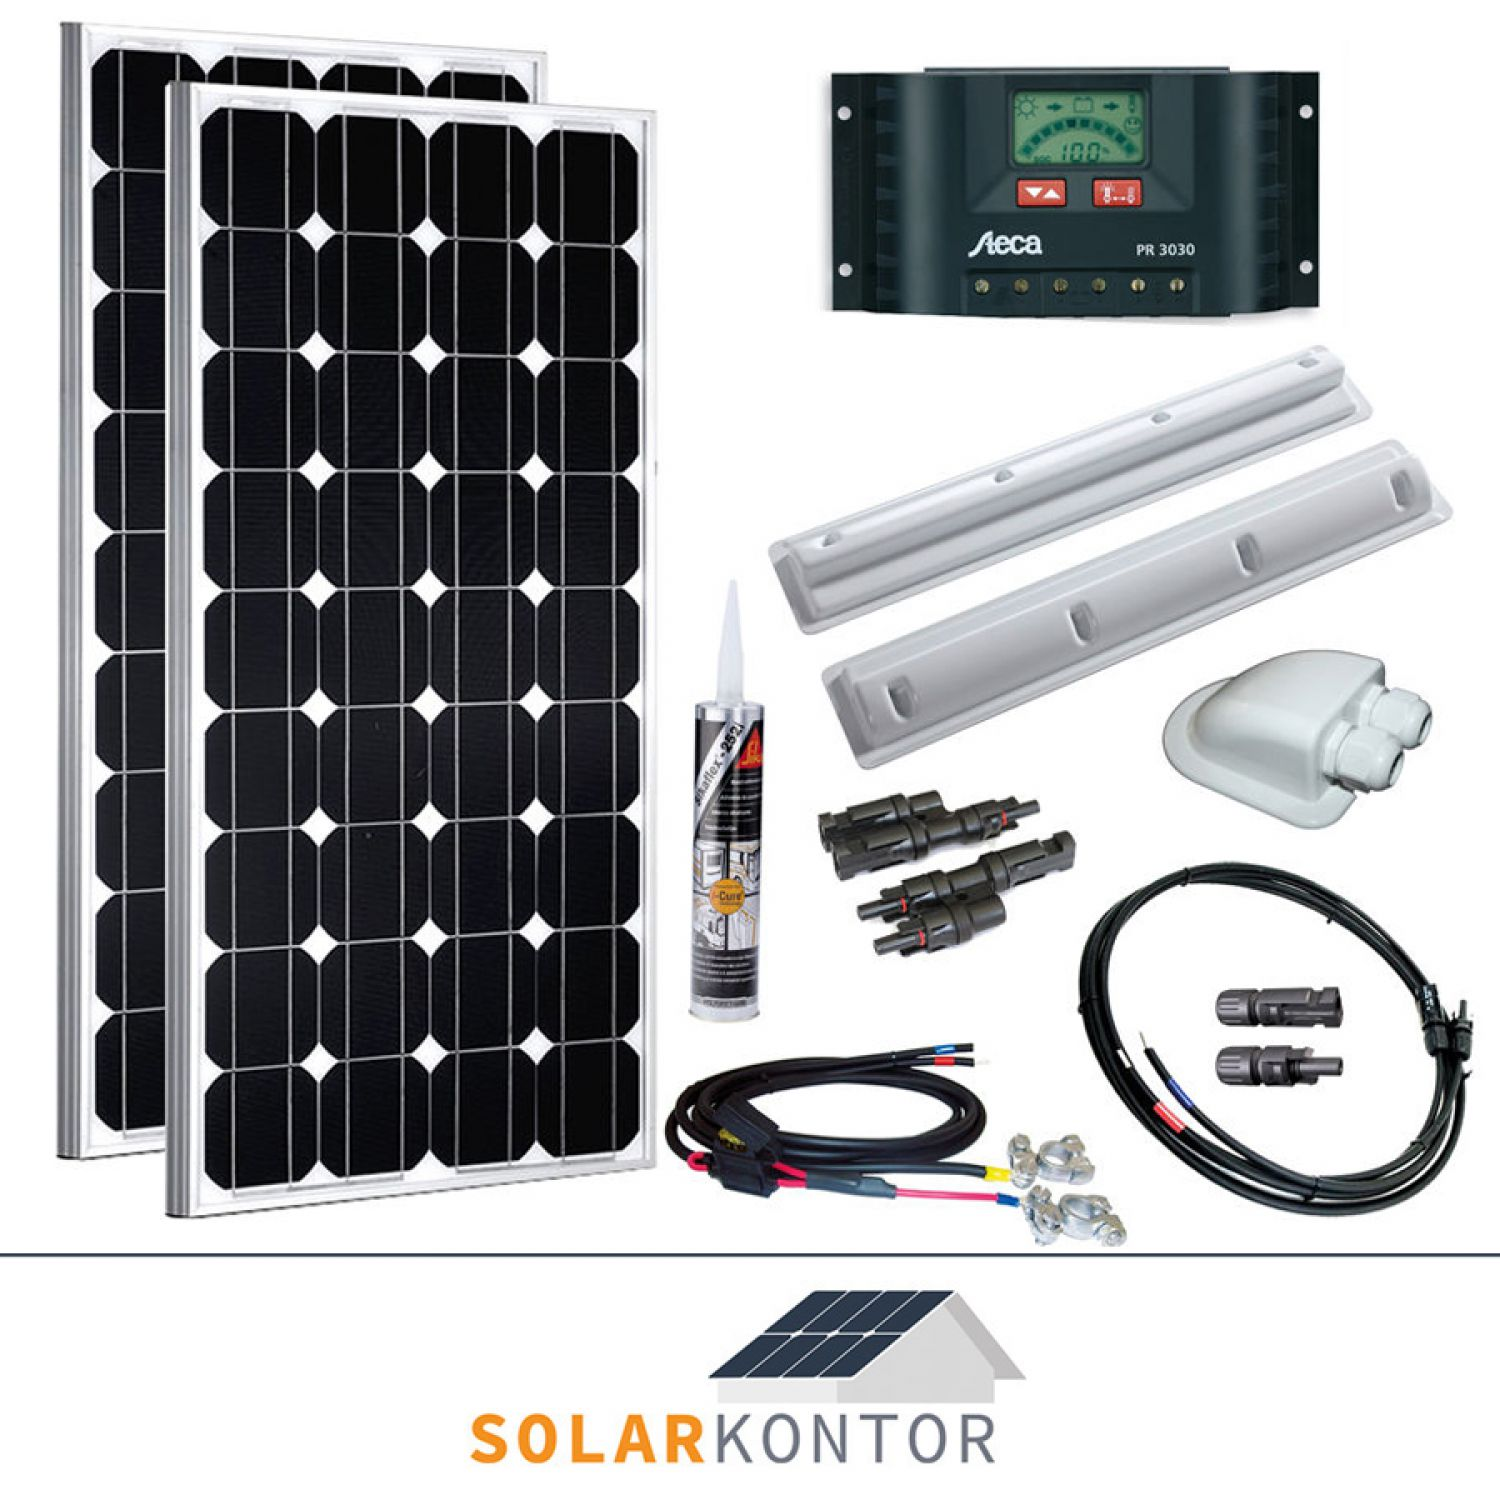 200w wattstunde wohnmobil 12v solaranlage solar set komplettpaket 200watt steca ebay. Black Bedroom Furniture Sets. Home Design Ideas